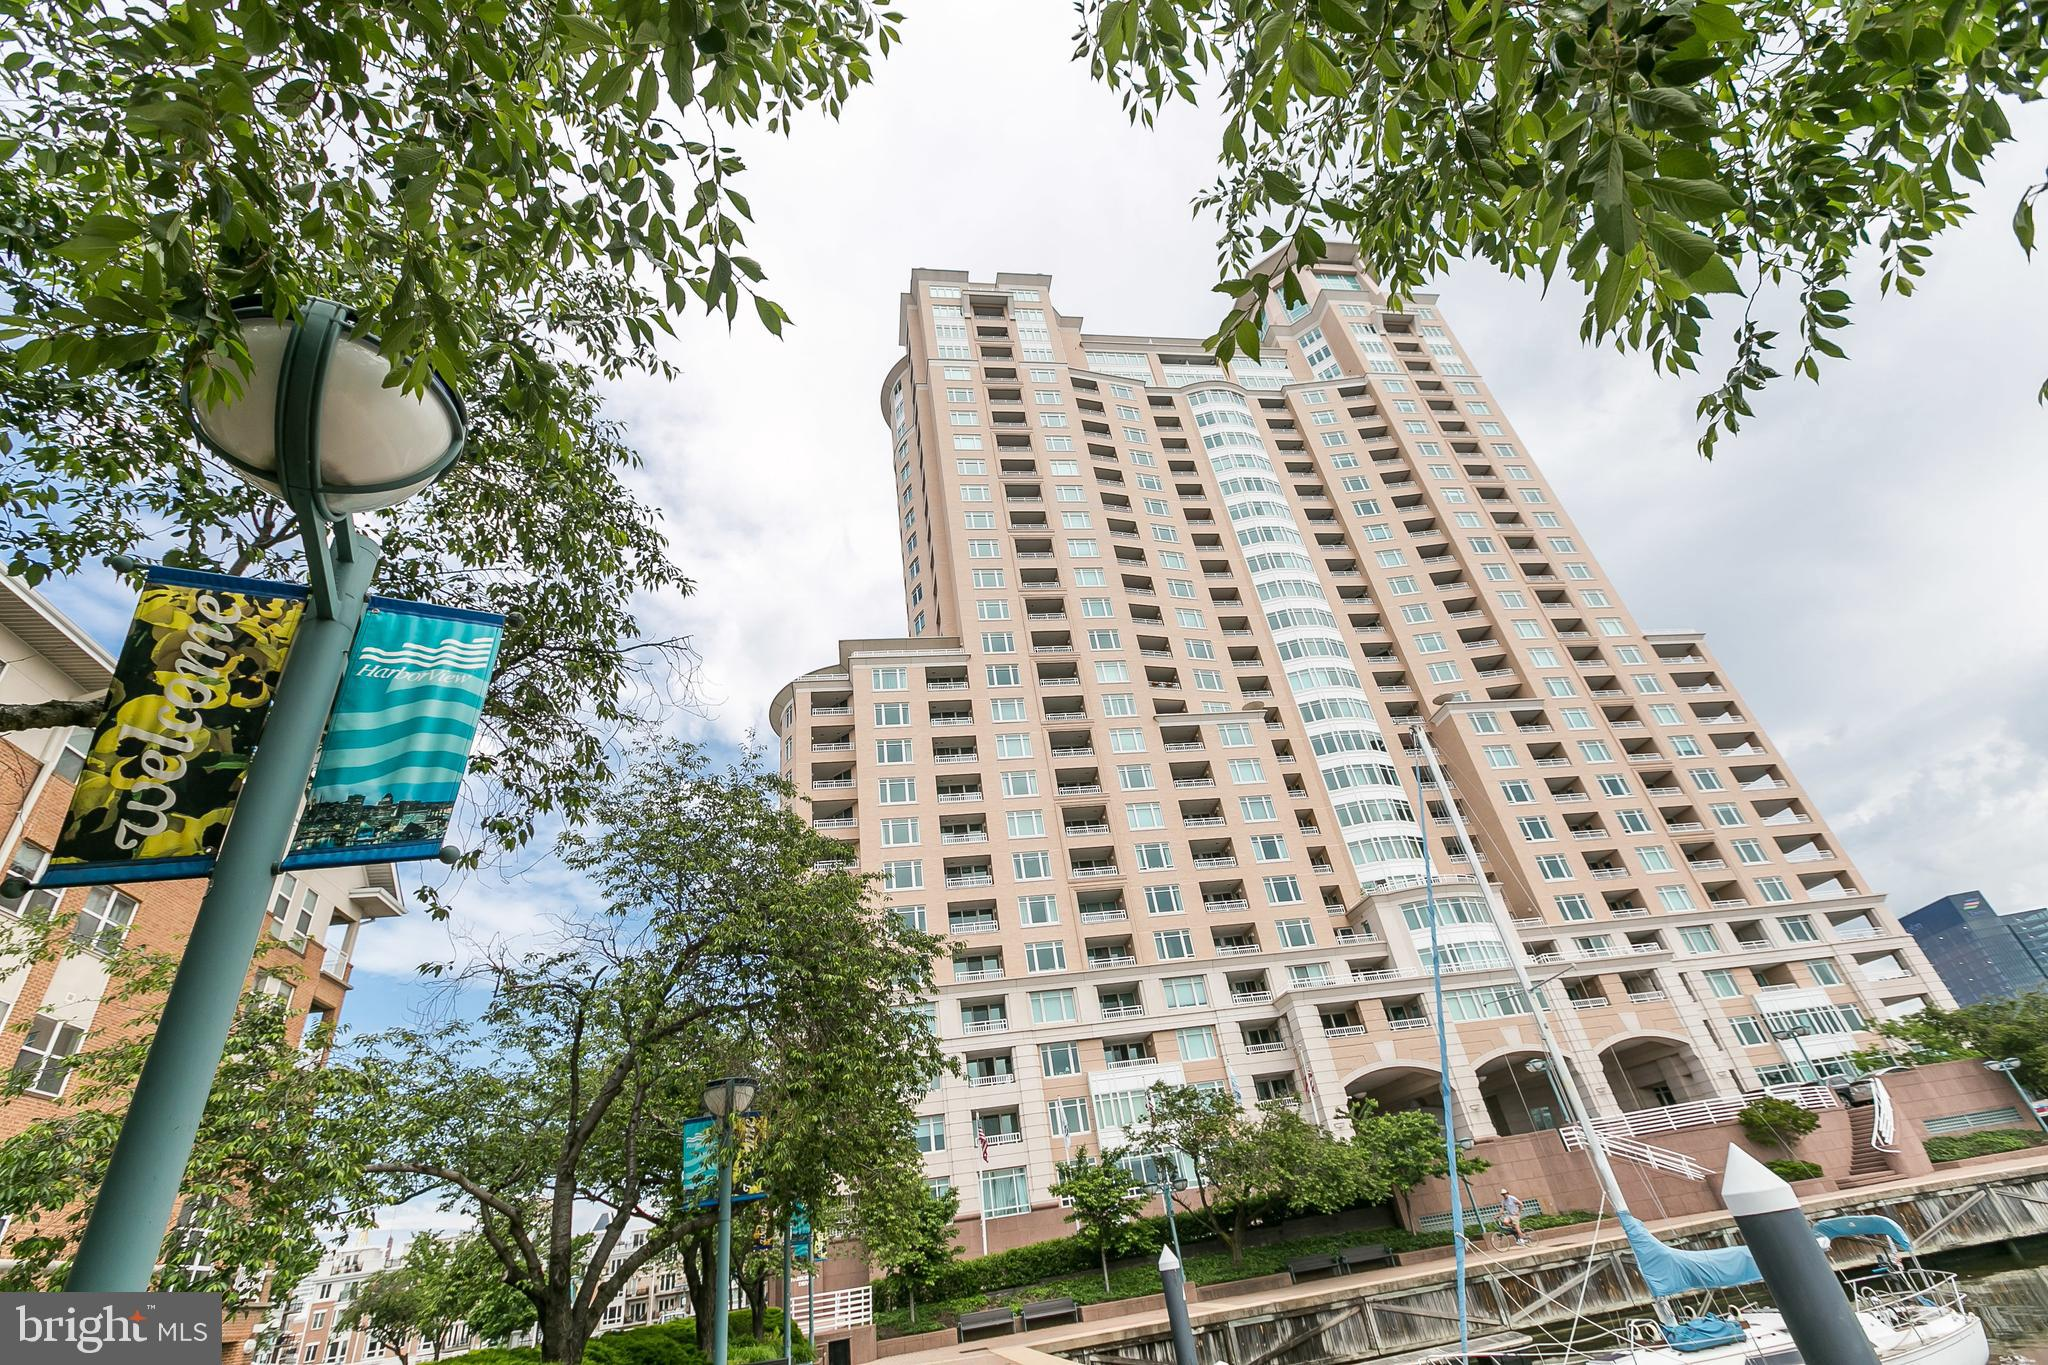 Capture the essence of city life with Spectacular views of both Inner Harbor excitement and the serene setting of the Harborview Marina from this 1,664 sf beautifully designed floor plan.  French door entryway opens to marble foyer. Spacious living room and formal dining room offer warm hardwood floors leading to slider to balcony - comfortable for year-round outdoor entertaining. Formal dining area with private balcony entrance and bay windows offering lots of sunlight and views of both stadiums, Fed Hill, Baltimore Aquarium, Pier Six Concert Pavilion, Harbor East, Harbor Point and the Inner Harbor Gateway! Enjoy early mornings in the quiet breakfast area beside the gourmet kitchen. Fine quality kitchen features include recessed lighting, granite counters, durable cabinetry with crown molding, cooktop, decorative white tile backsplash, double bowl sink, side by side fridge, microwave and double ovens. In the Master Suite and second bedroom you'll find comfortable neutral tone Berber carpet in classic pattern matching the small print bedroom curtains. Other features include recessed accent lighting, spacious walk-in closet and 2nd balcony access. Private Master Bath with double bowl marble vanity, marble floors, whirlpool tub and separate walk-in shower. Second bedroom with neutral tone Berber carpet, also with classic pattern, double door closet and 2nd balcony access with views of Domino Sugar, Port Covington and the South Baltimore landscape, Key Bridge and beyond! Quality decorator wallpaper accents throughout. Living in such luxury, also enjoy 2 assigned garage parking spaces, as well as the many building amenities and services at your fingertips. 24/7 front desk concierge, gated garage parking, beautifully landscaped grounds with water fountains and walking/jogging paths, extensive fitness center, steam/sauna, in & outdoor pools, valet guest parking, social lounge, billiard room, conference room, business center, ballroom, bike storage, grill area, onsite gues